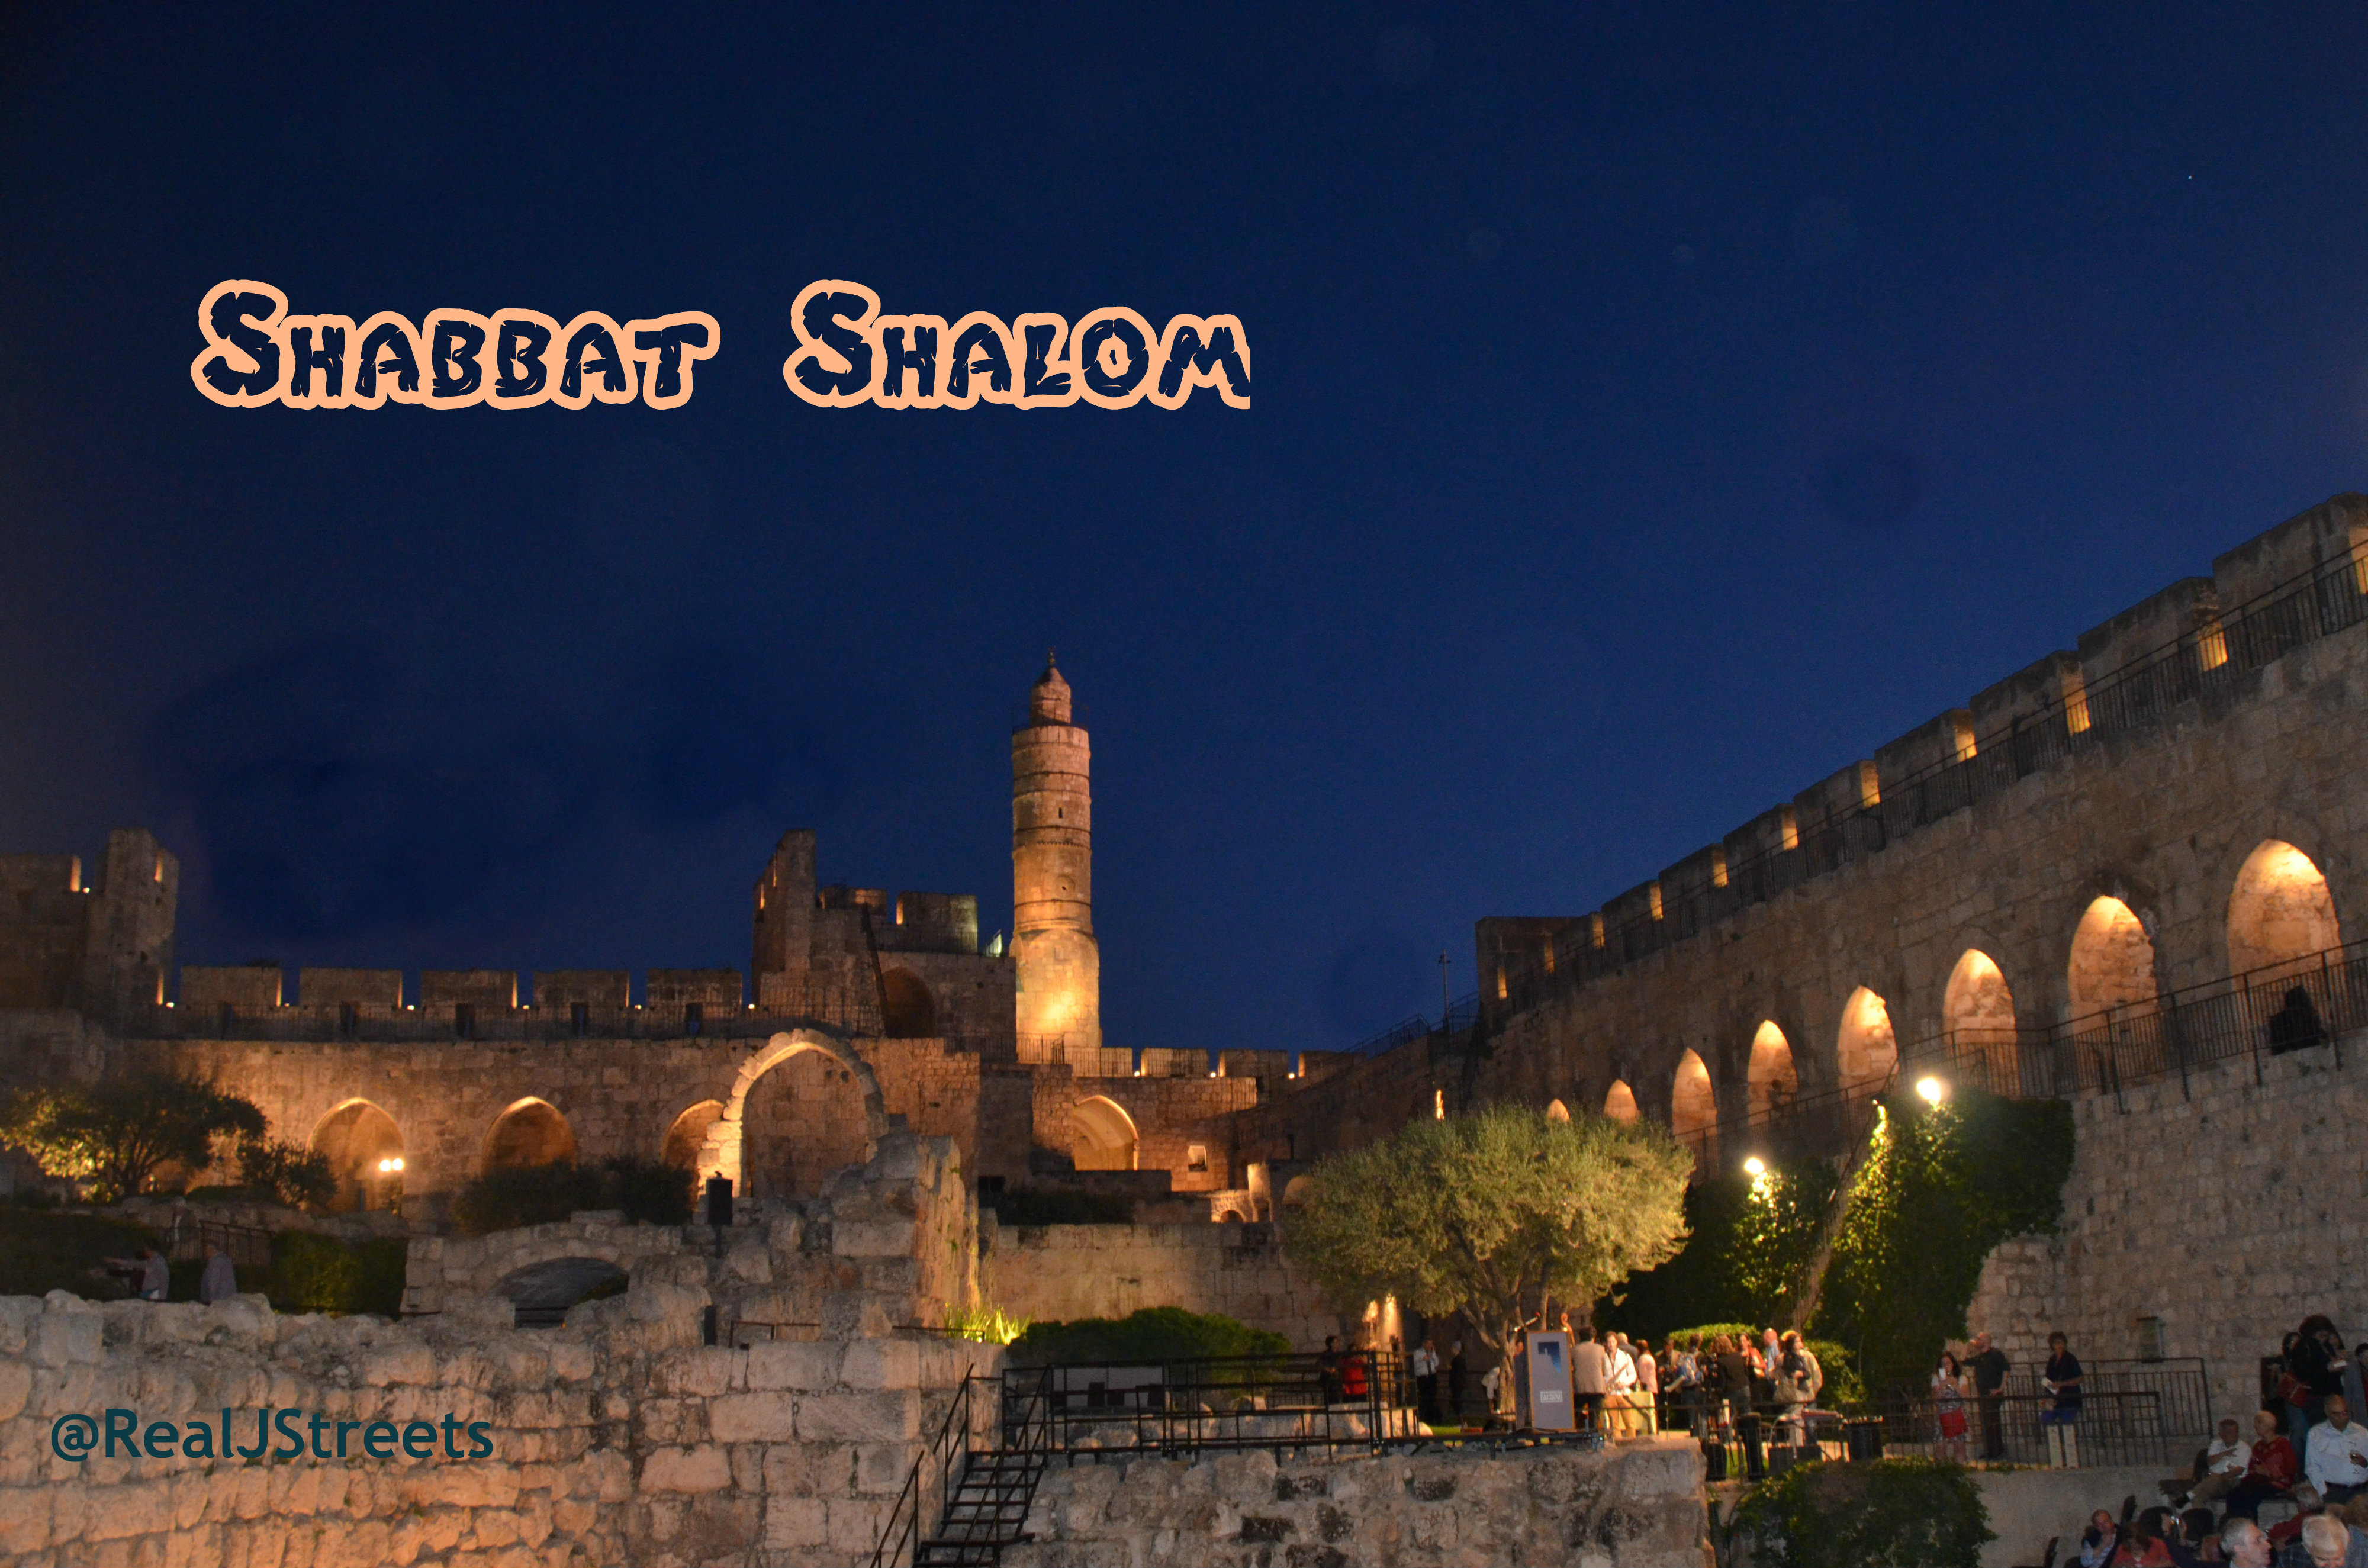 image Shabbat shalom, Photo Tower of David, picture Jerusalem at night